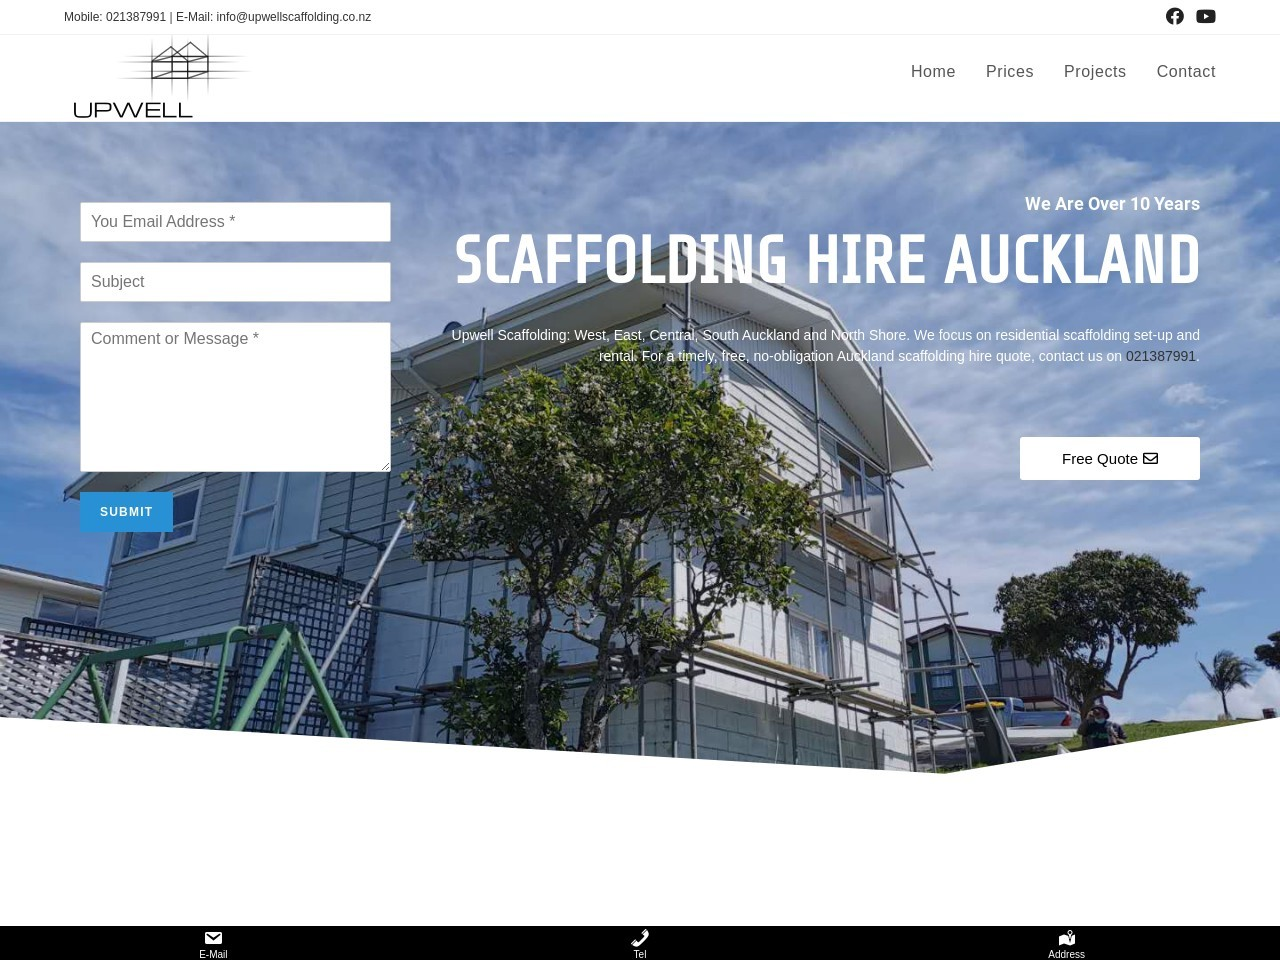 SCAFFOLDING HIRE AUCKLAND